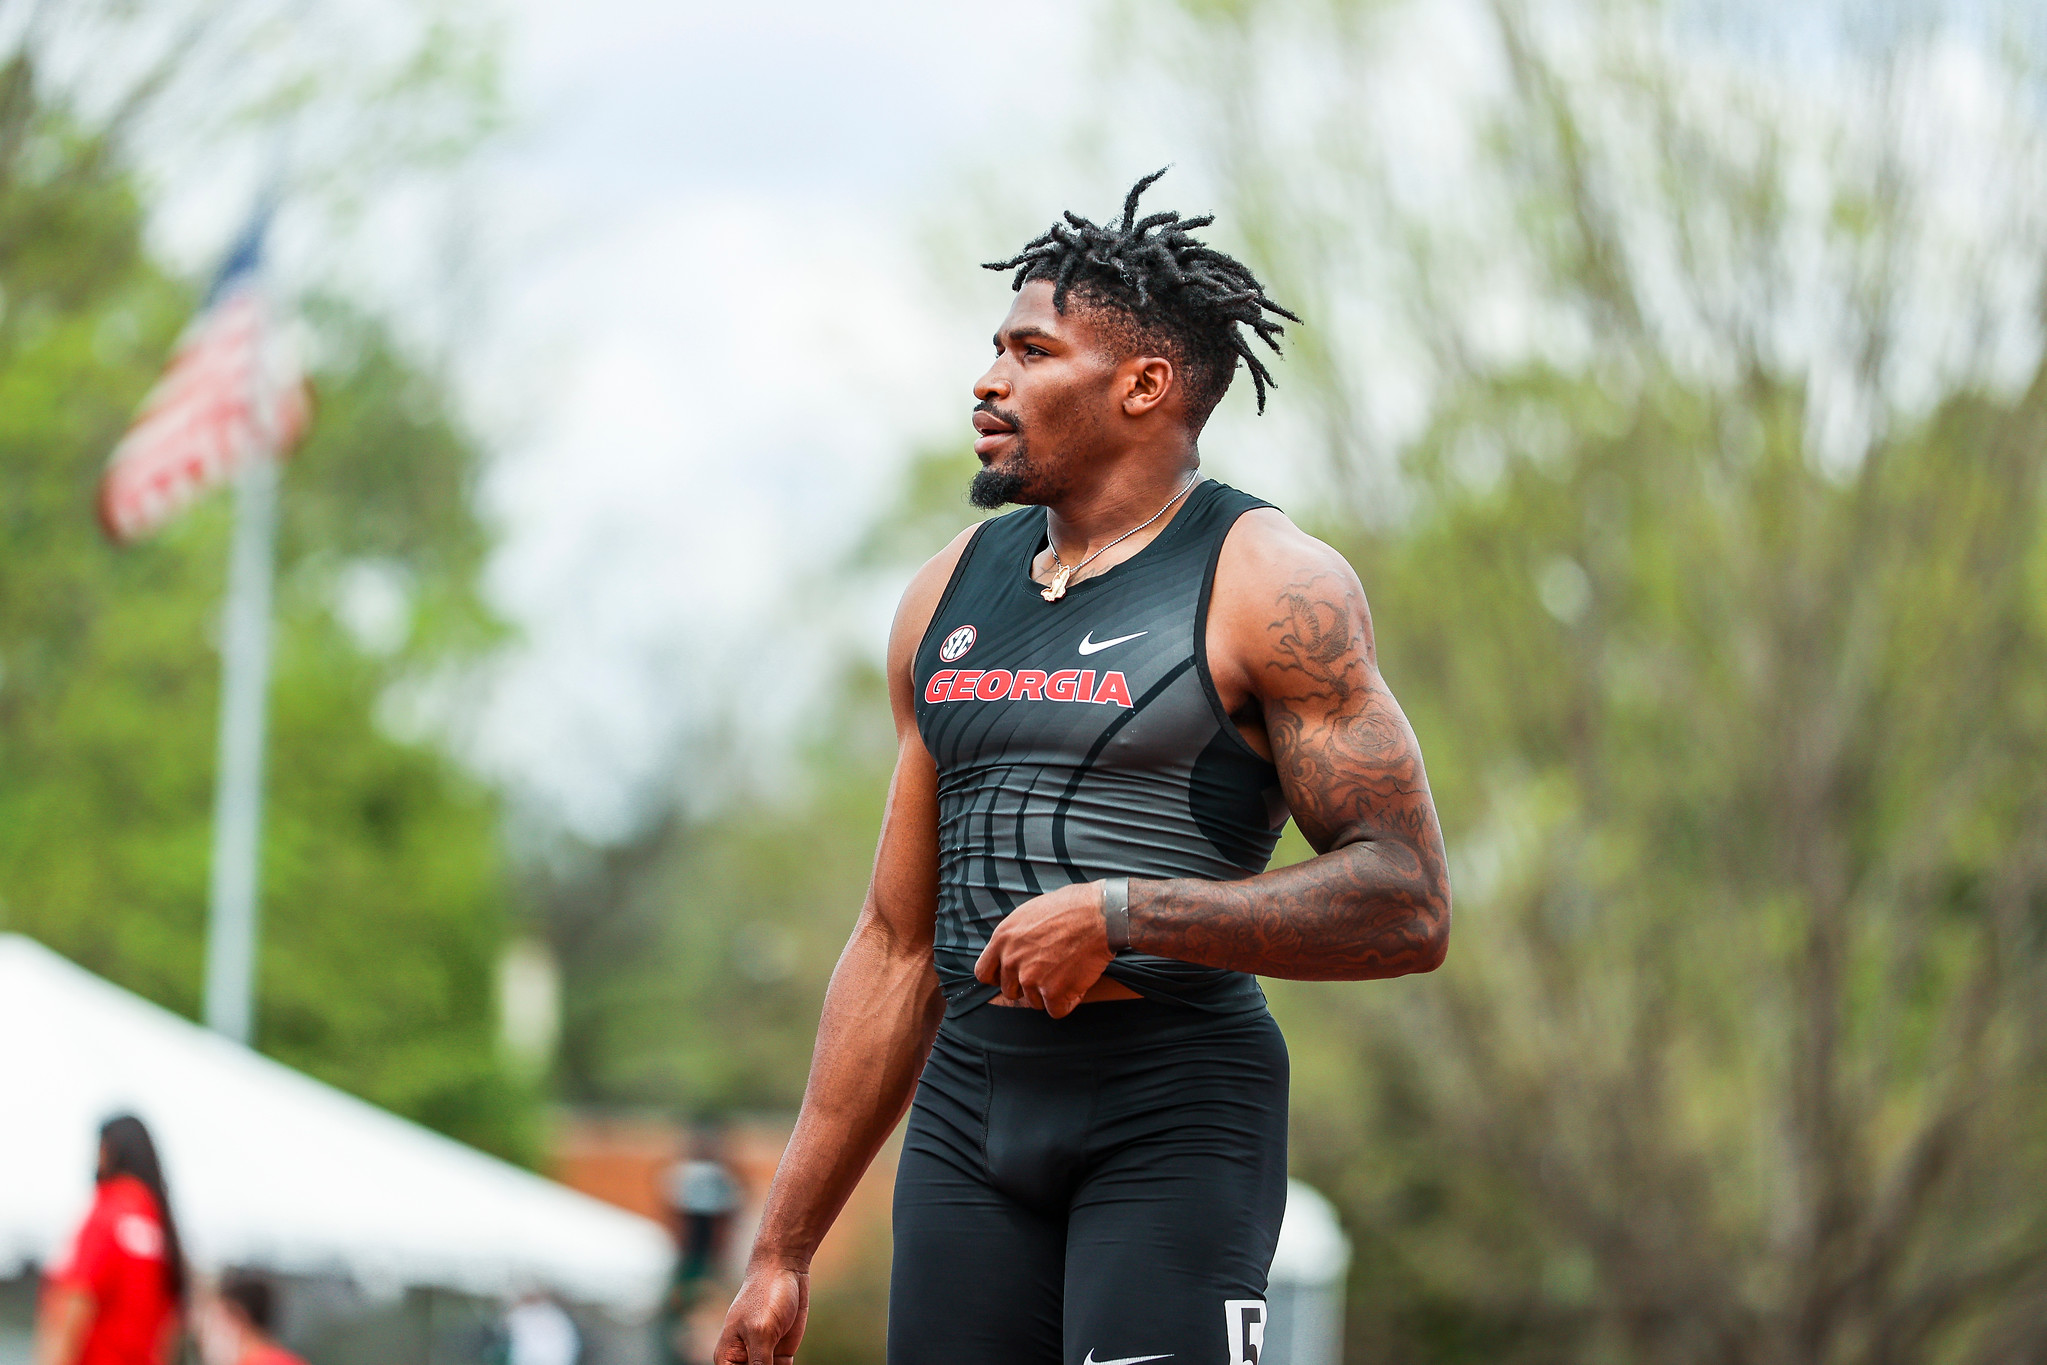 Georgia's Elija Godwin during the Spec Towns Invitational at the Spec Towns Track in Athens, Ga., on Friday, April 9, 2021. (Photo by Tony Walsh)